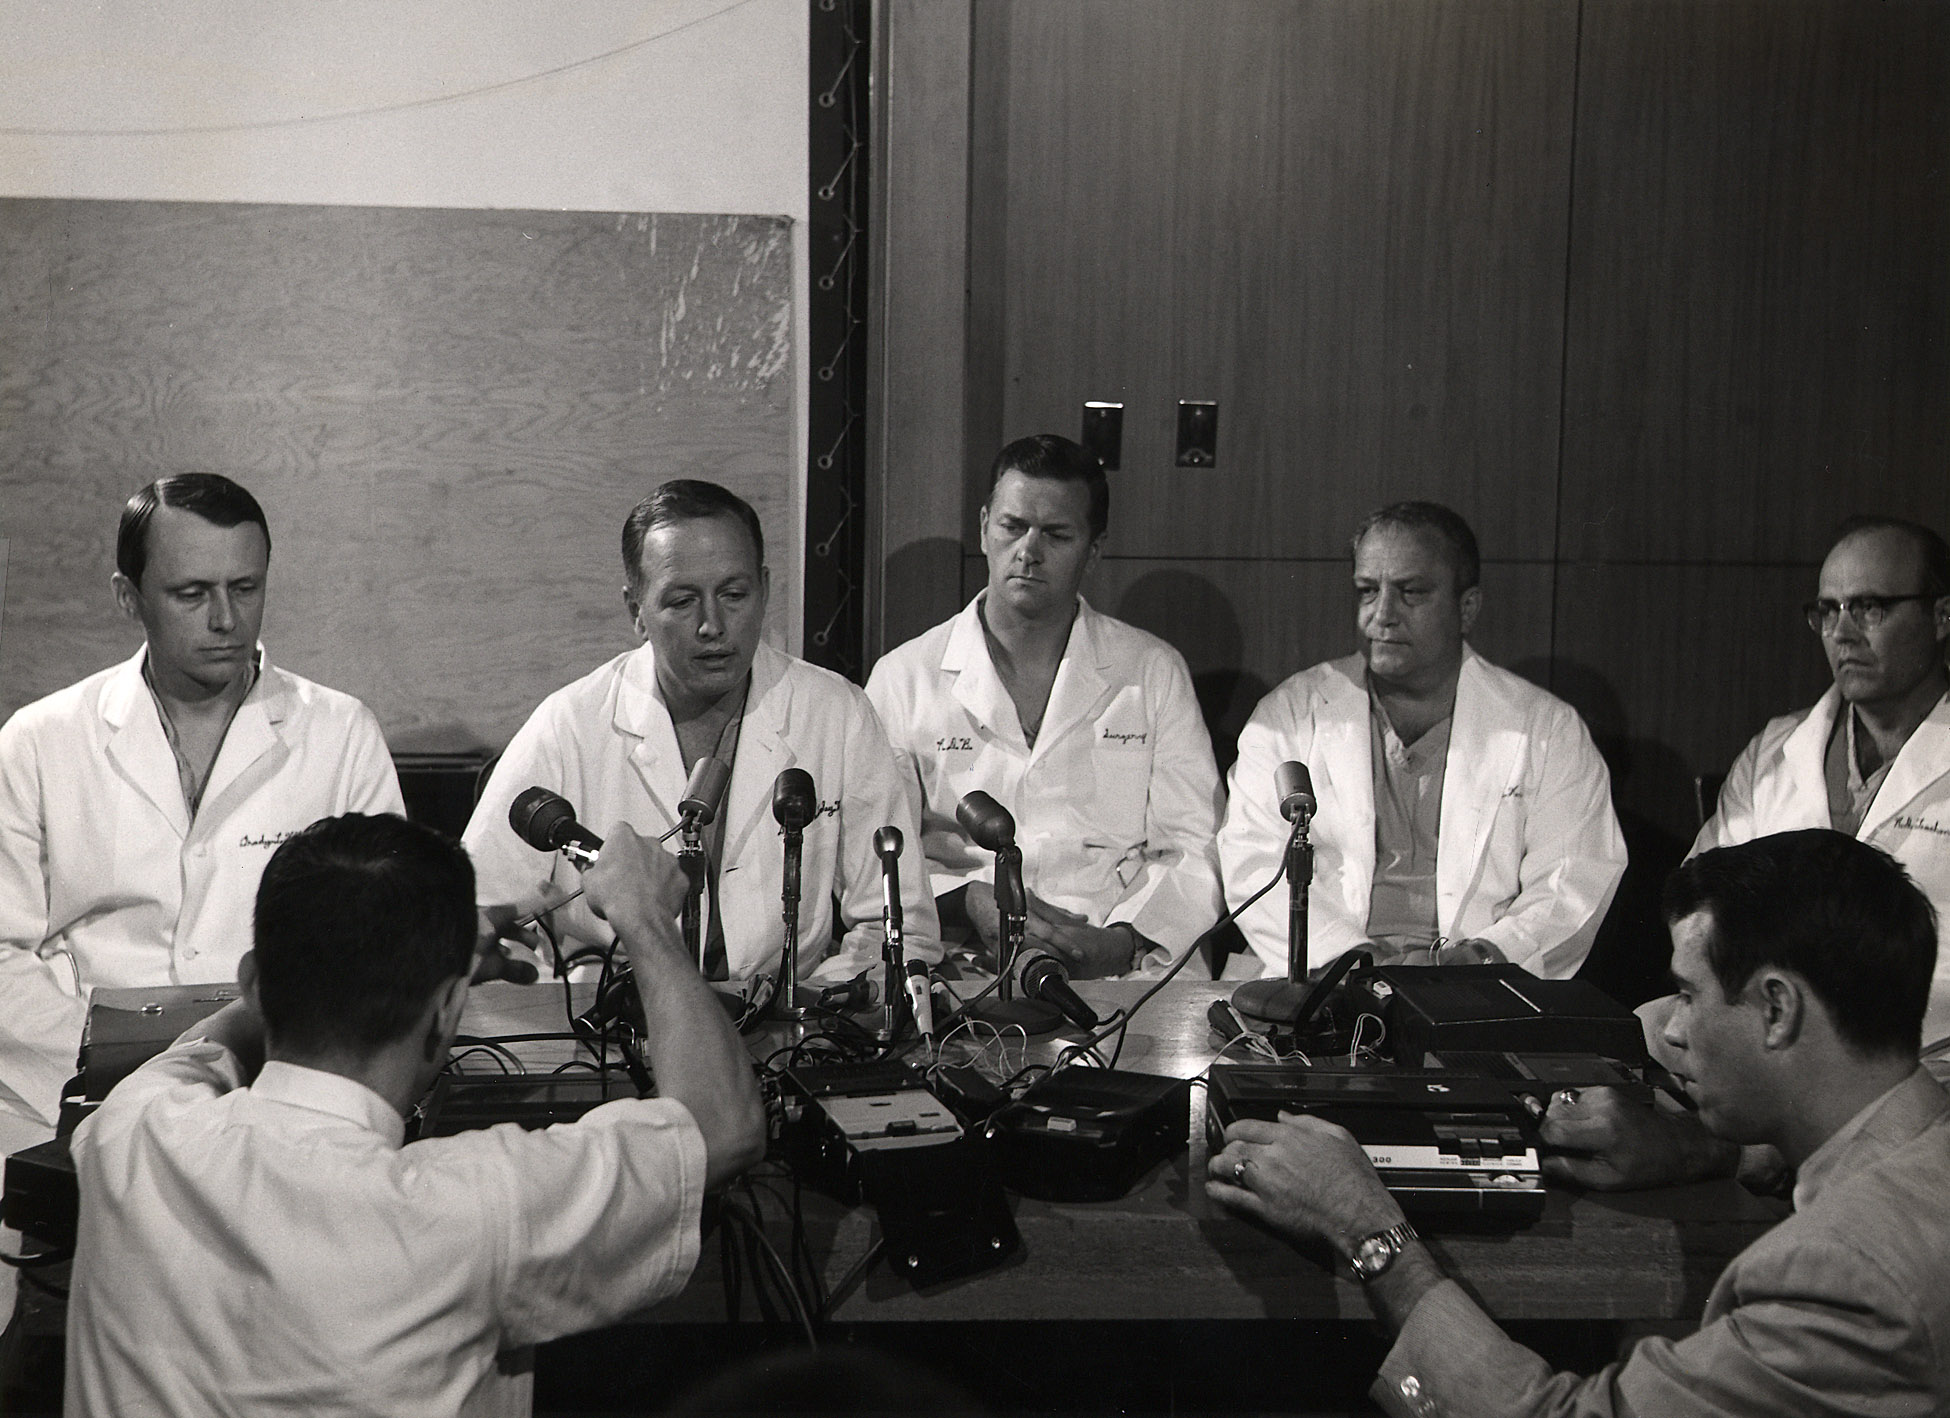 Dr. Cooley at a press conference with his colleagues at St. Luke's Episcopal Hospital after Everett Thomas's transplant operation, which was the first successful heart transplant in the United States. (L-R) Grady Hallman, Denton A. Cooley, Robert Bloodwell, Arthur Keats, Arthur Keats and Robert Leachman.